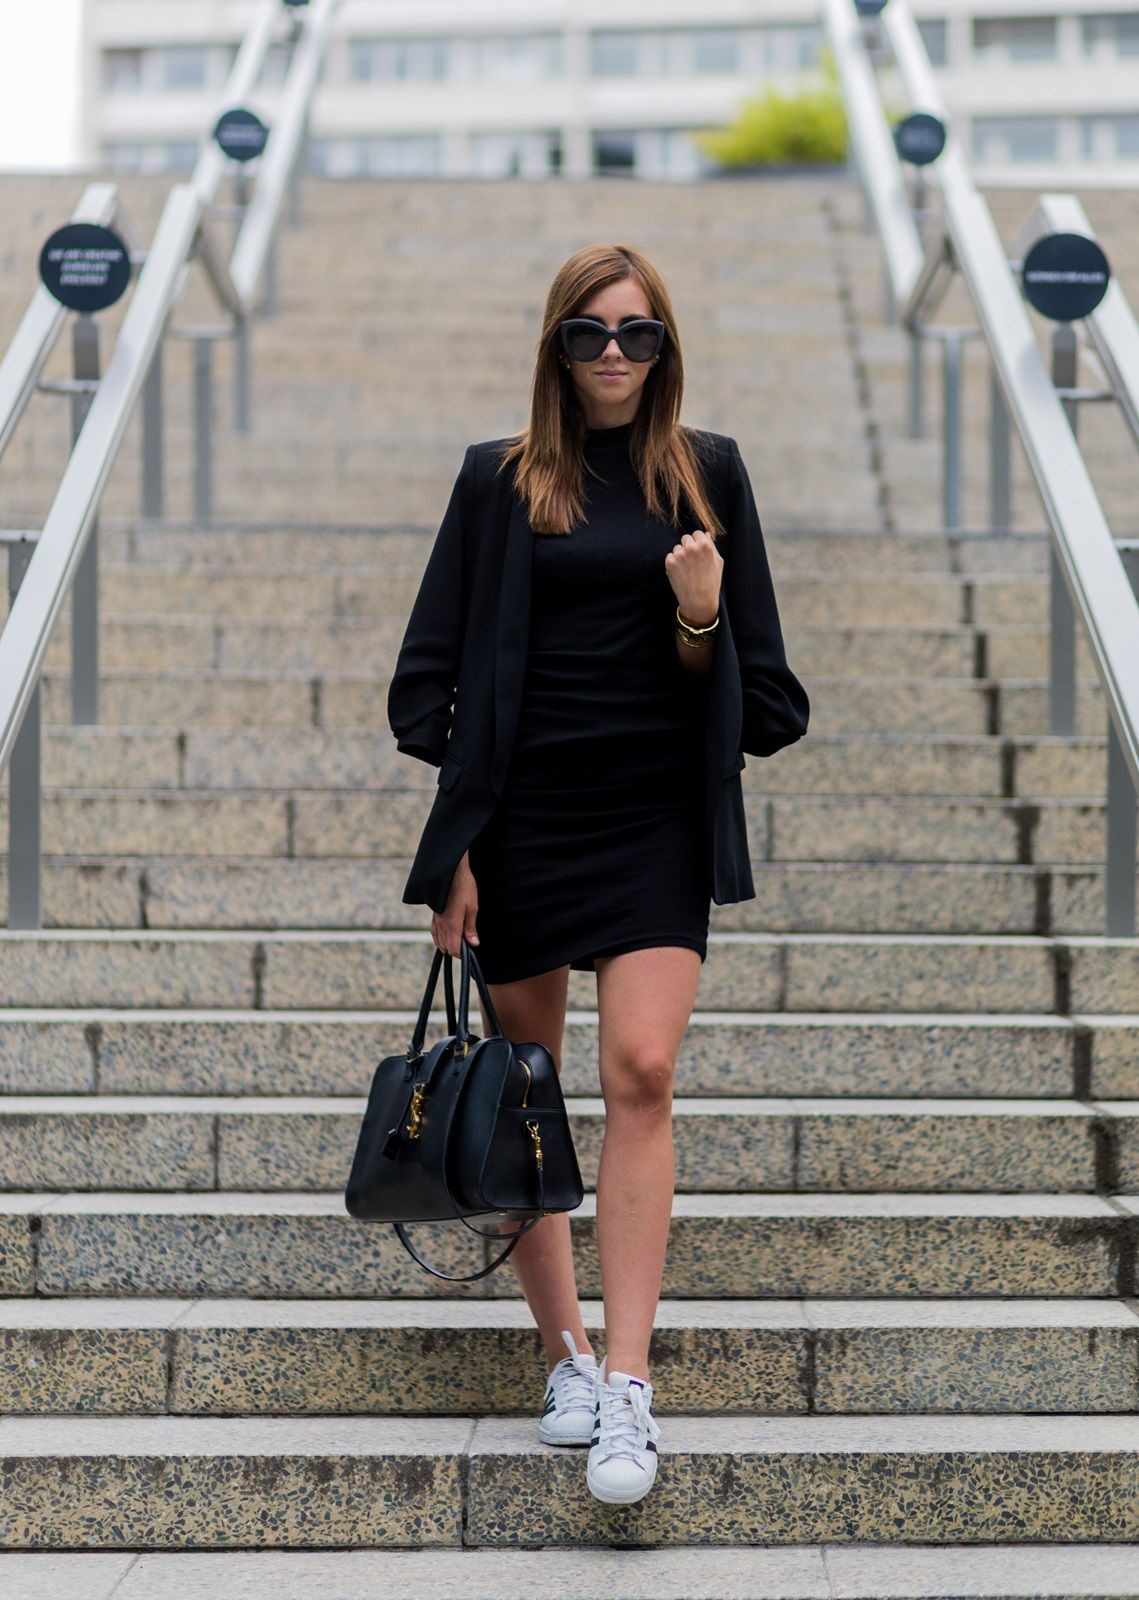 What Shoes To Wear With A Black Dress